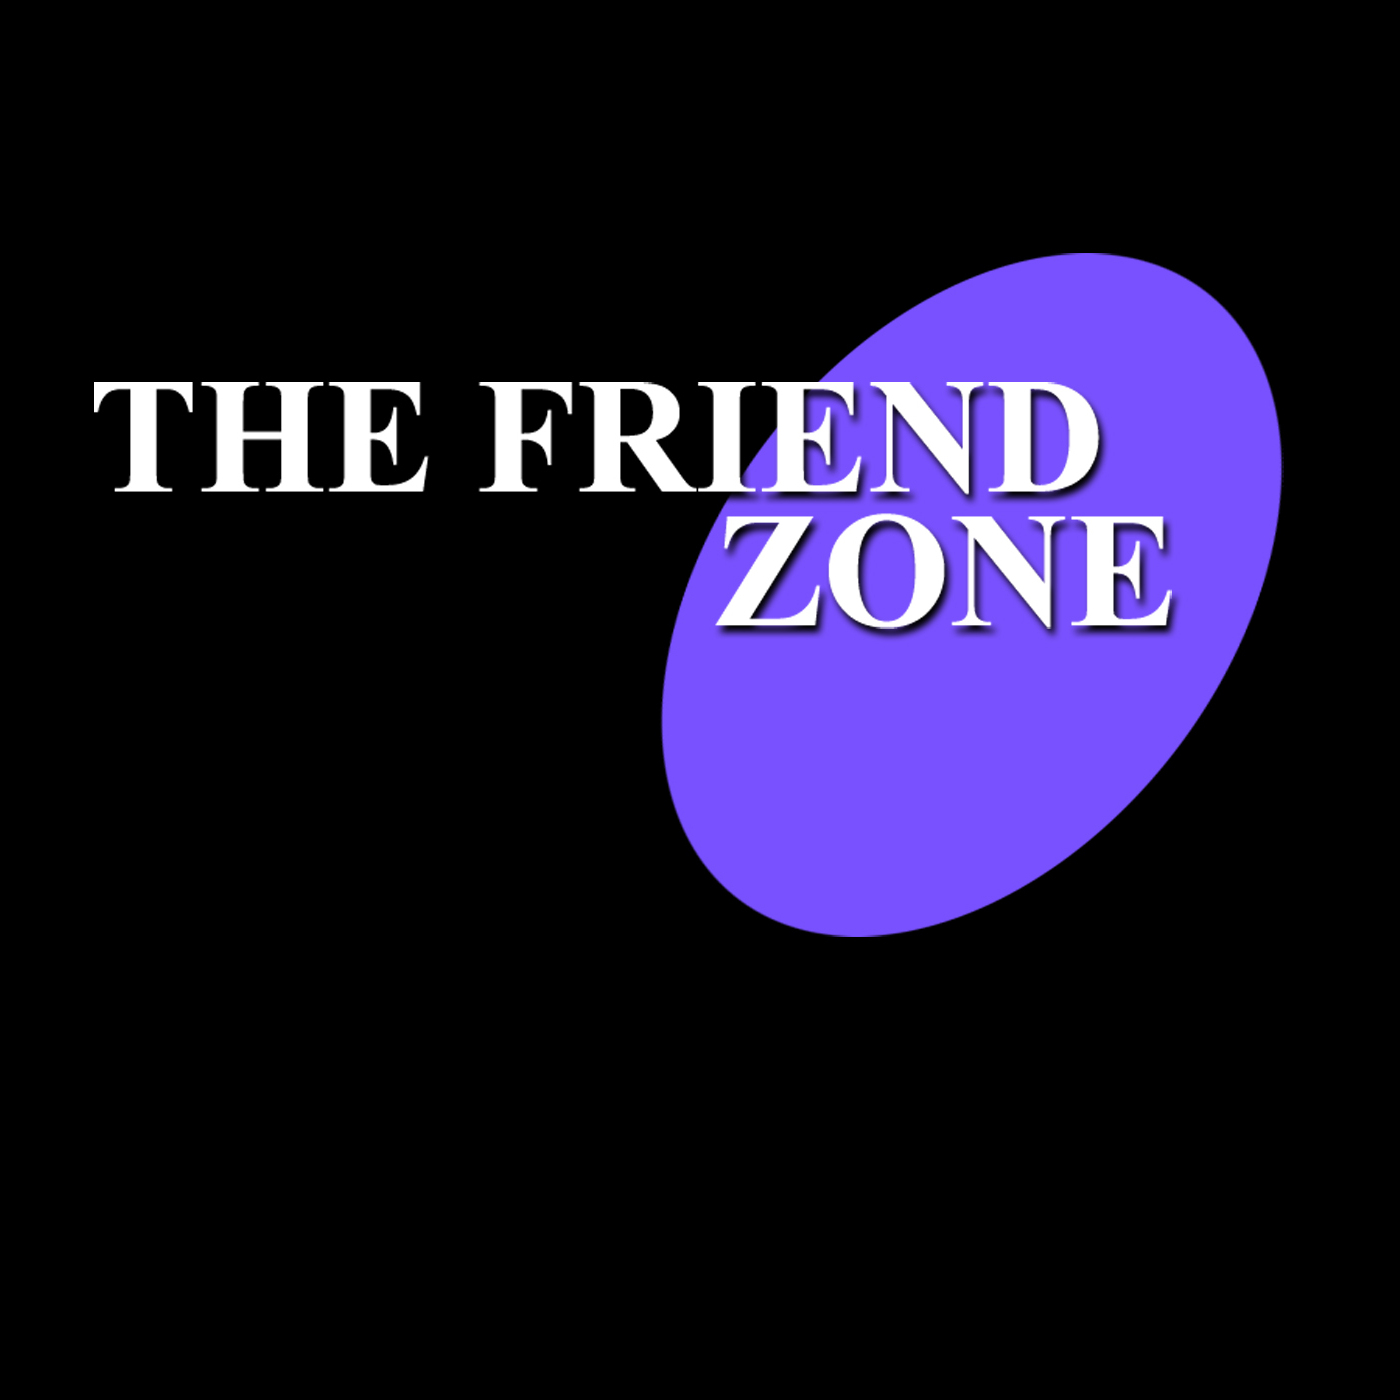 Stories from the Friendzone